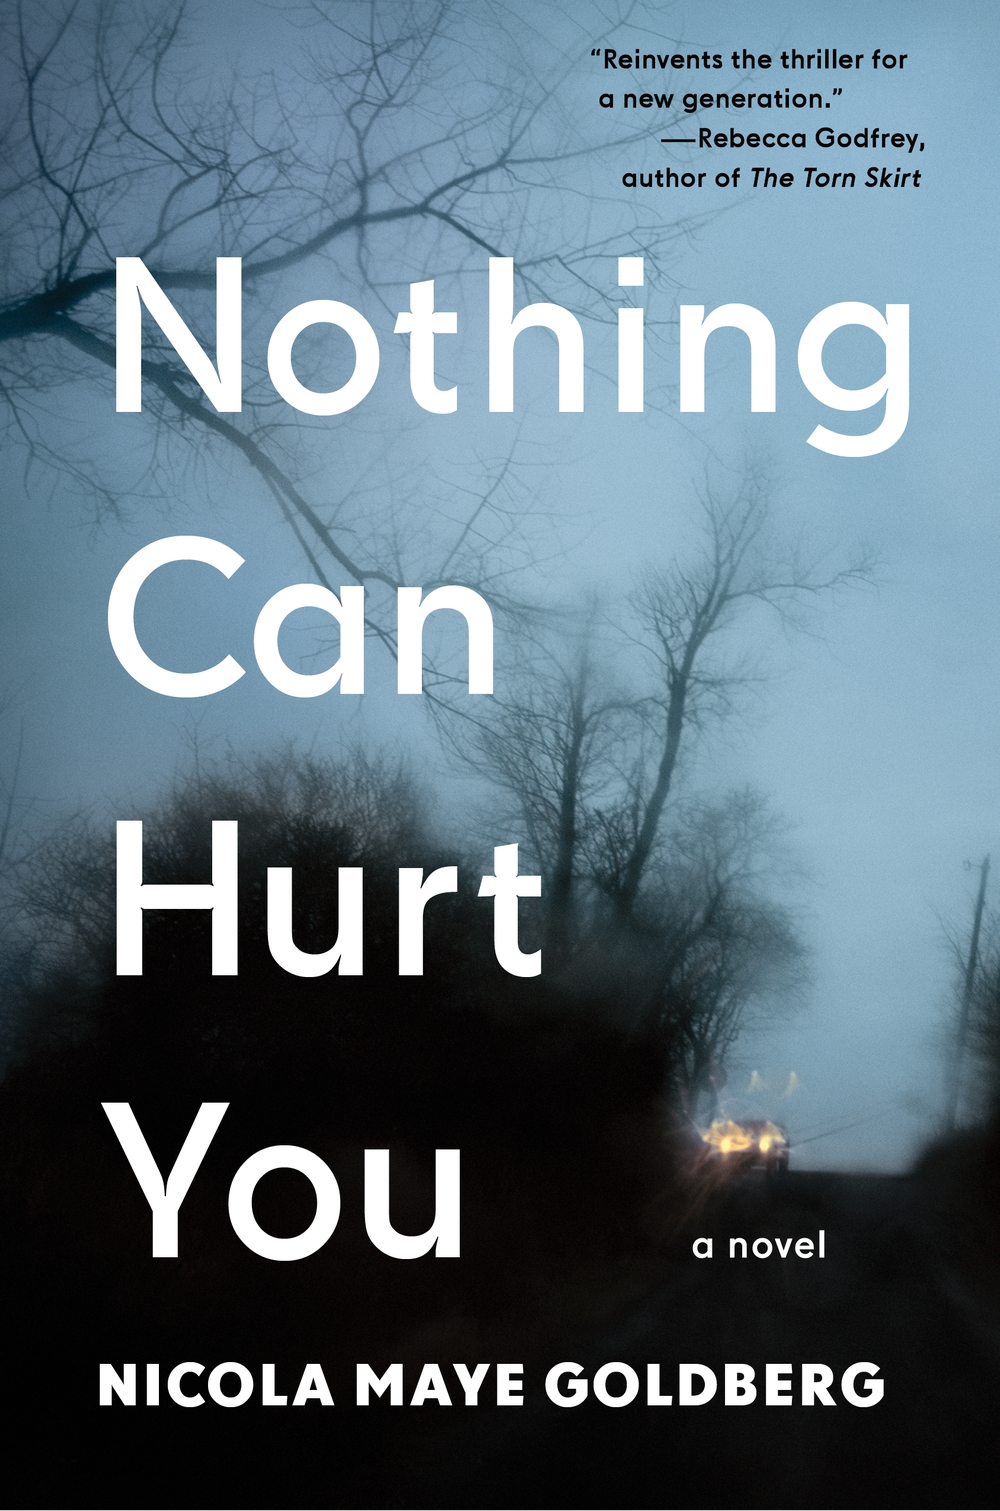 Book Launch: Nothing Can Hurt You by Nicola Maye Goldberg